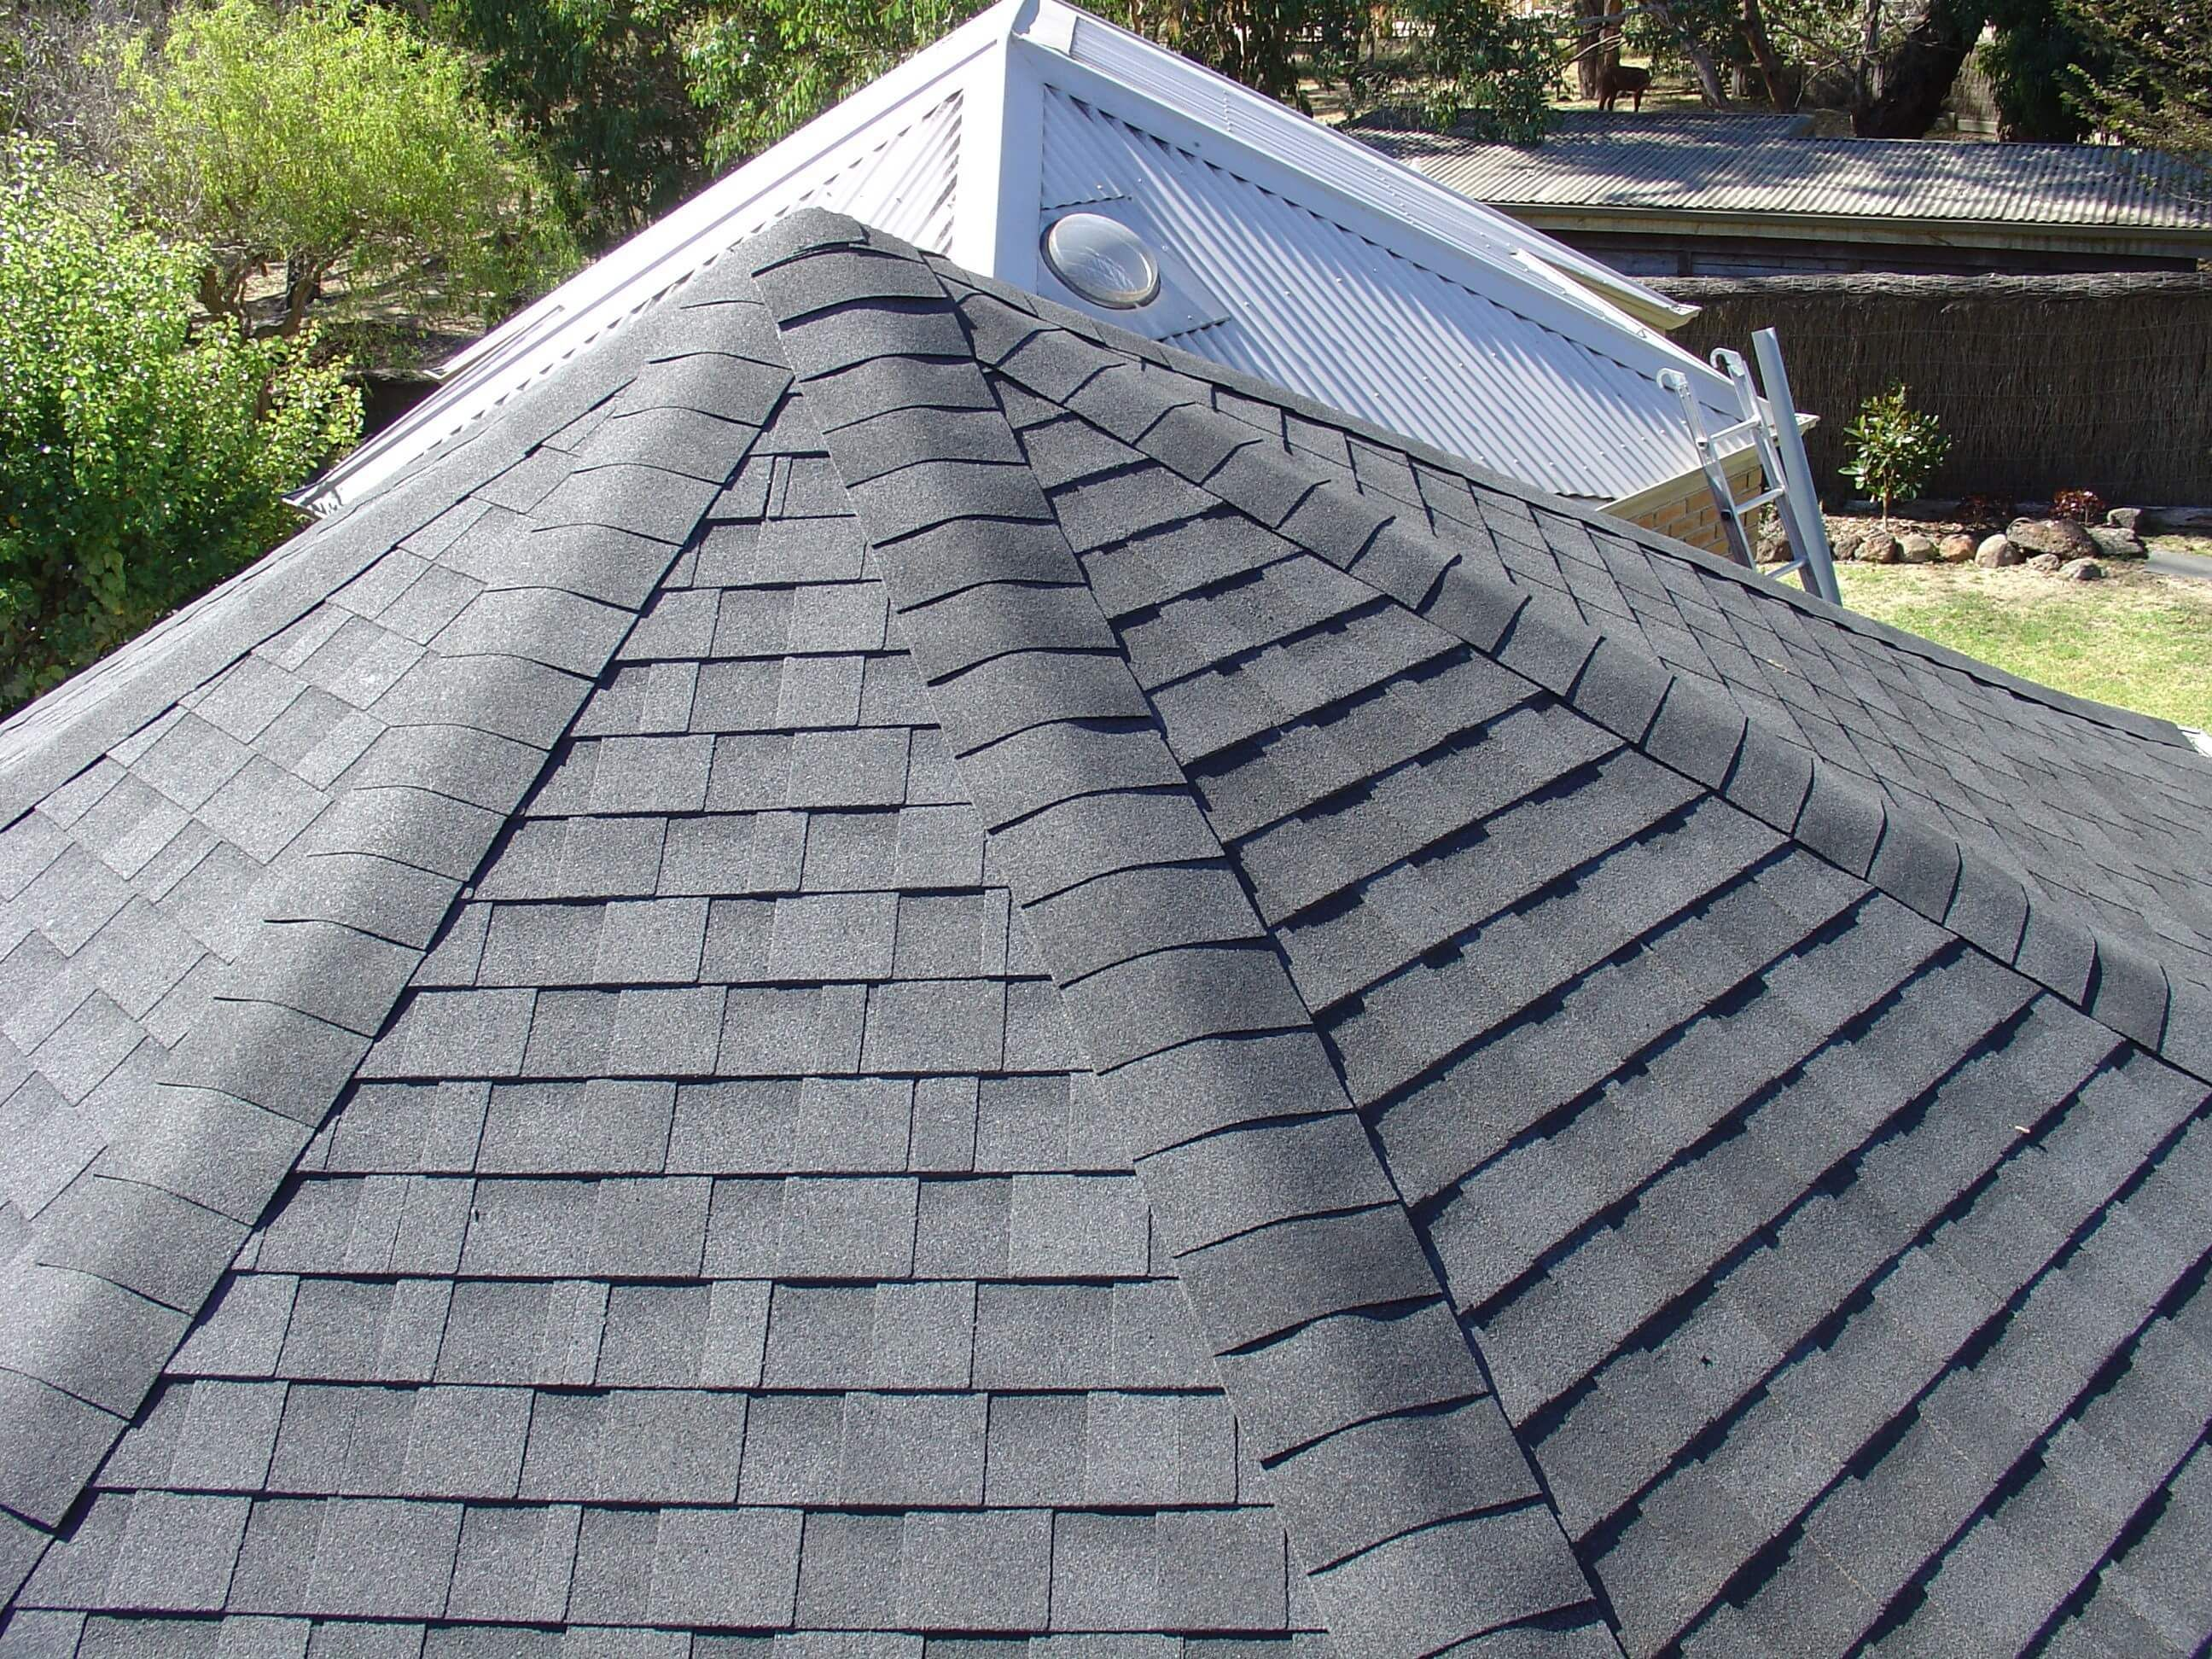 Diverse House Roof Types That Works For All Homes Cool Roof Gazebo Roof Architectural Shingles